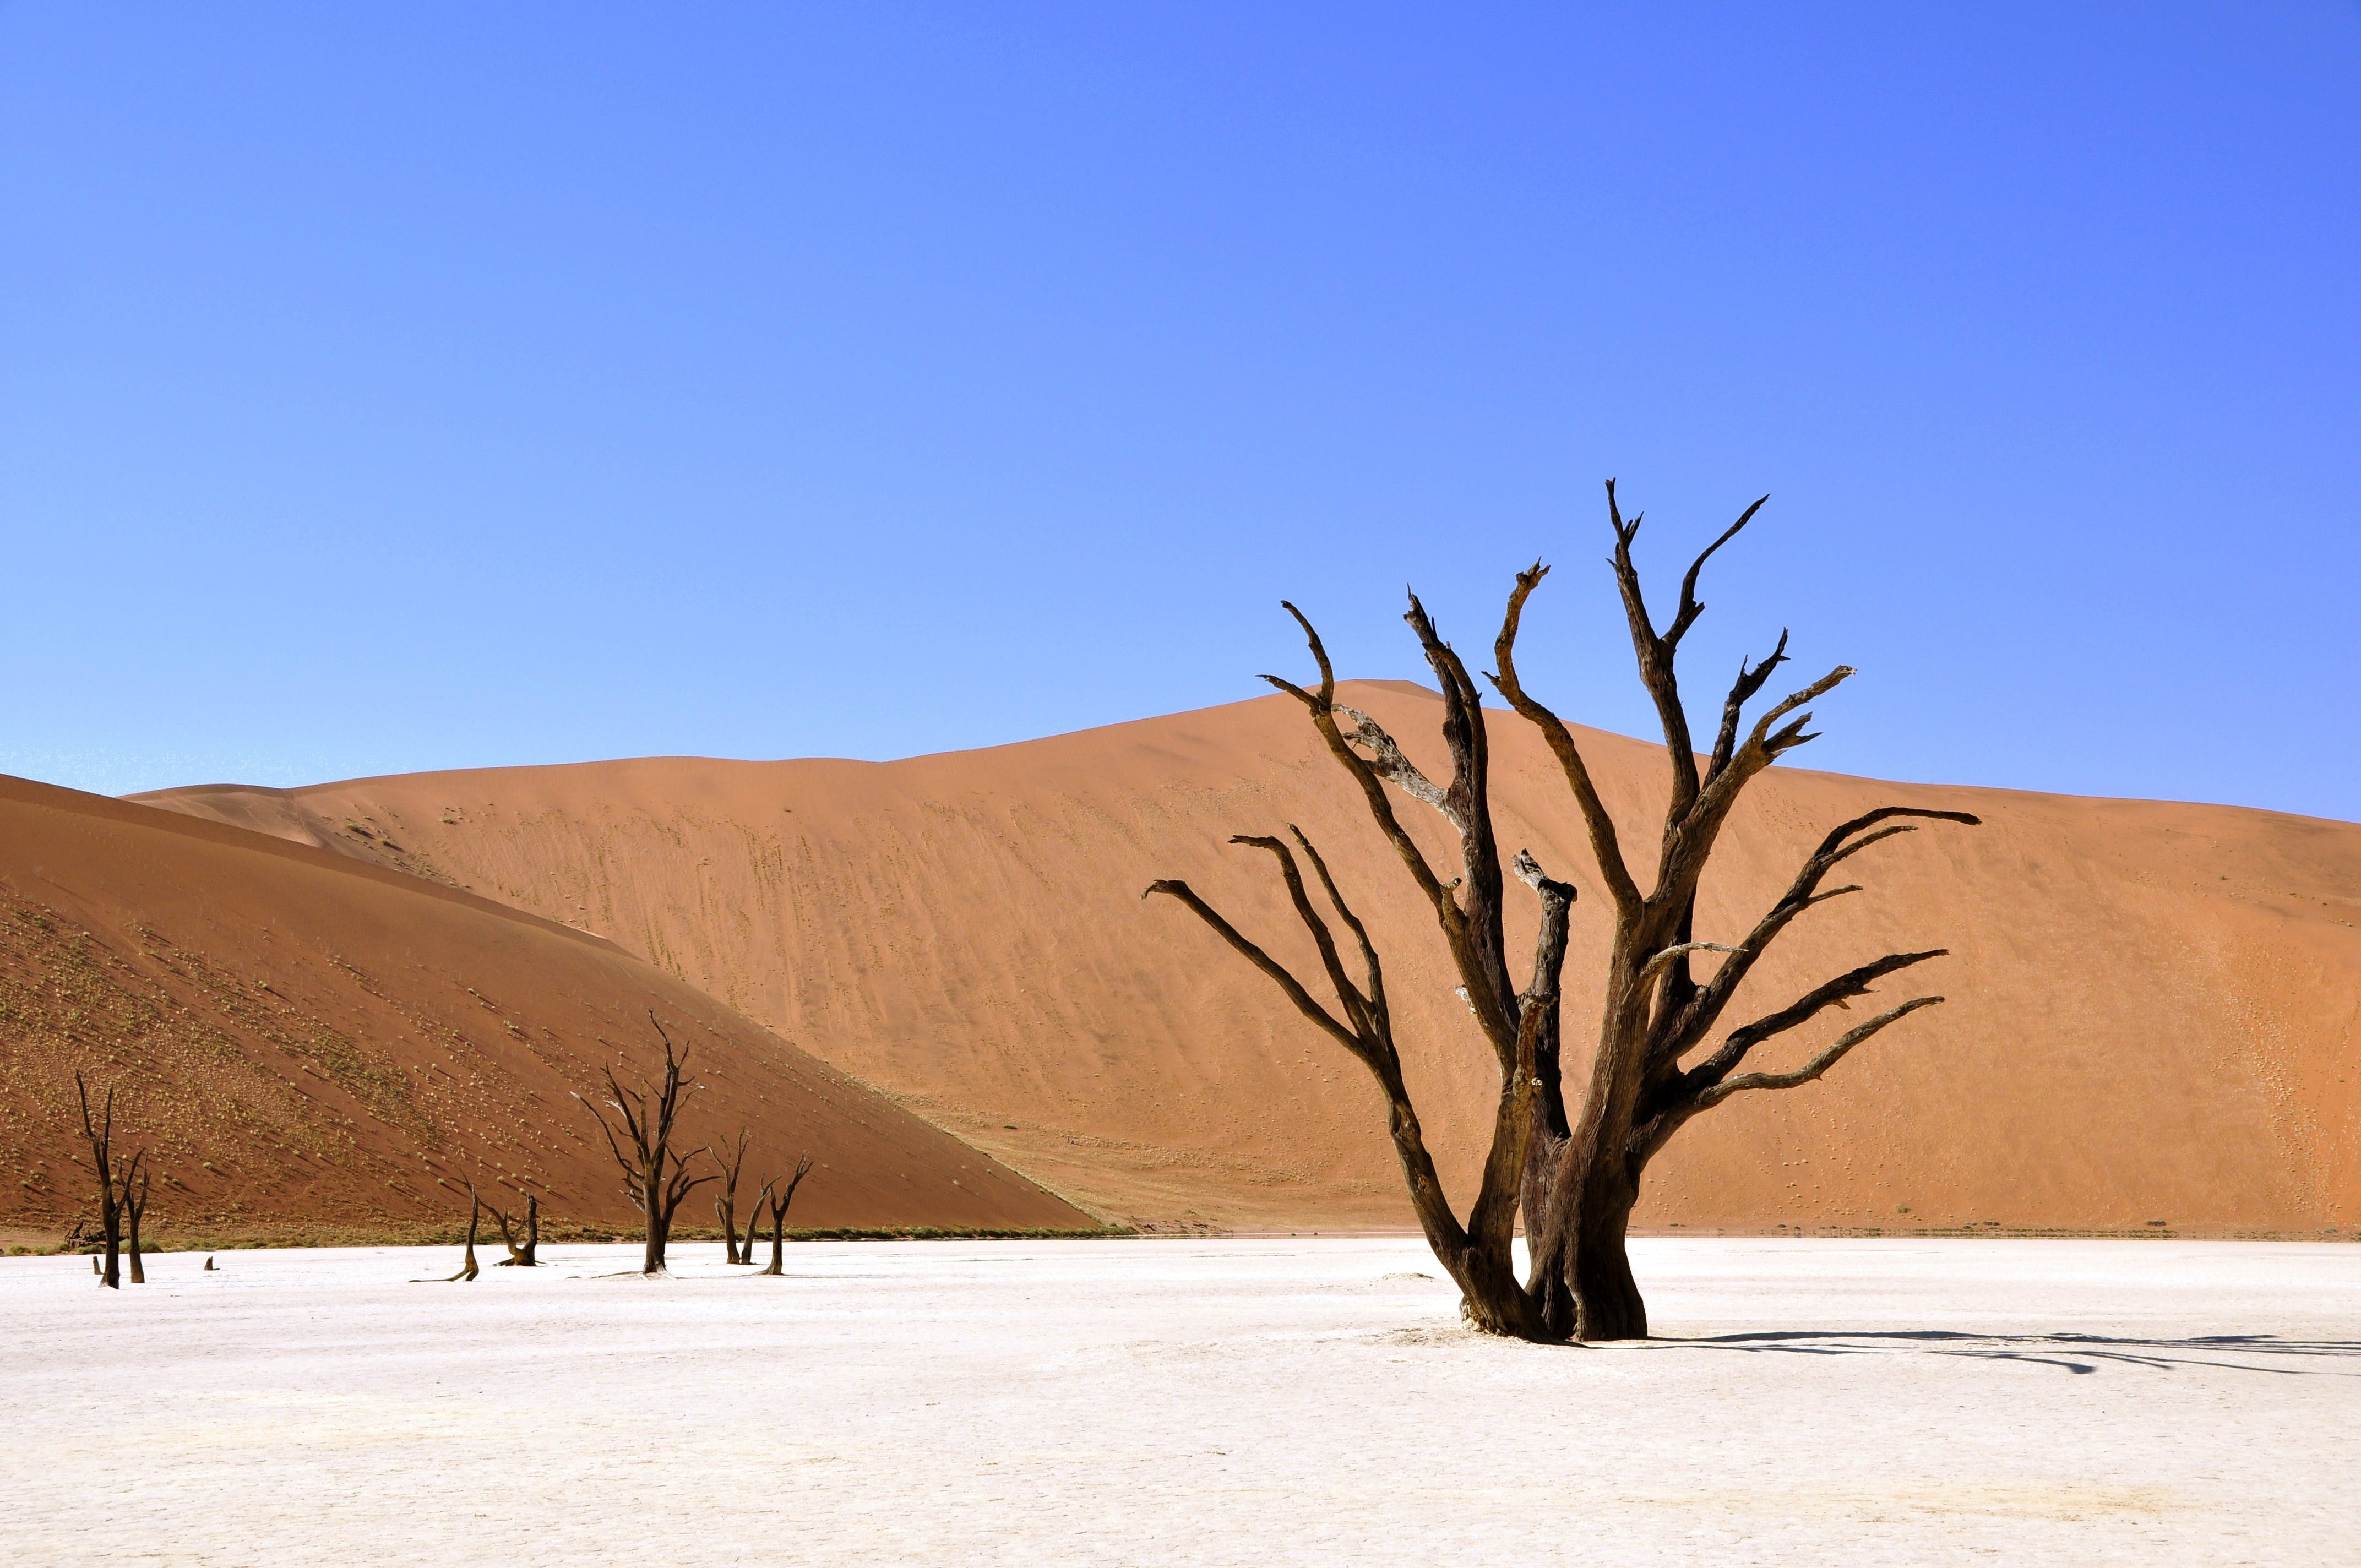 Wittered Tree on a Dessert